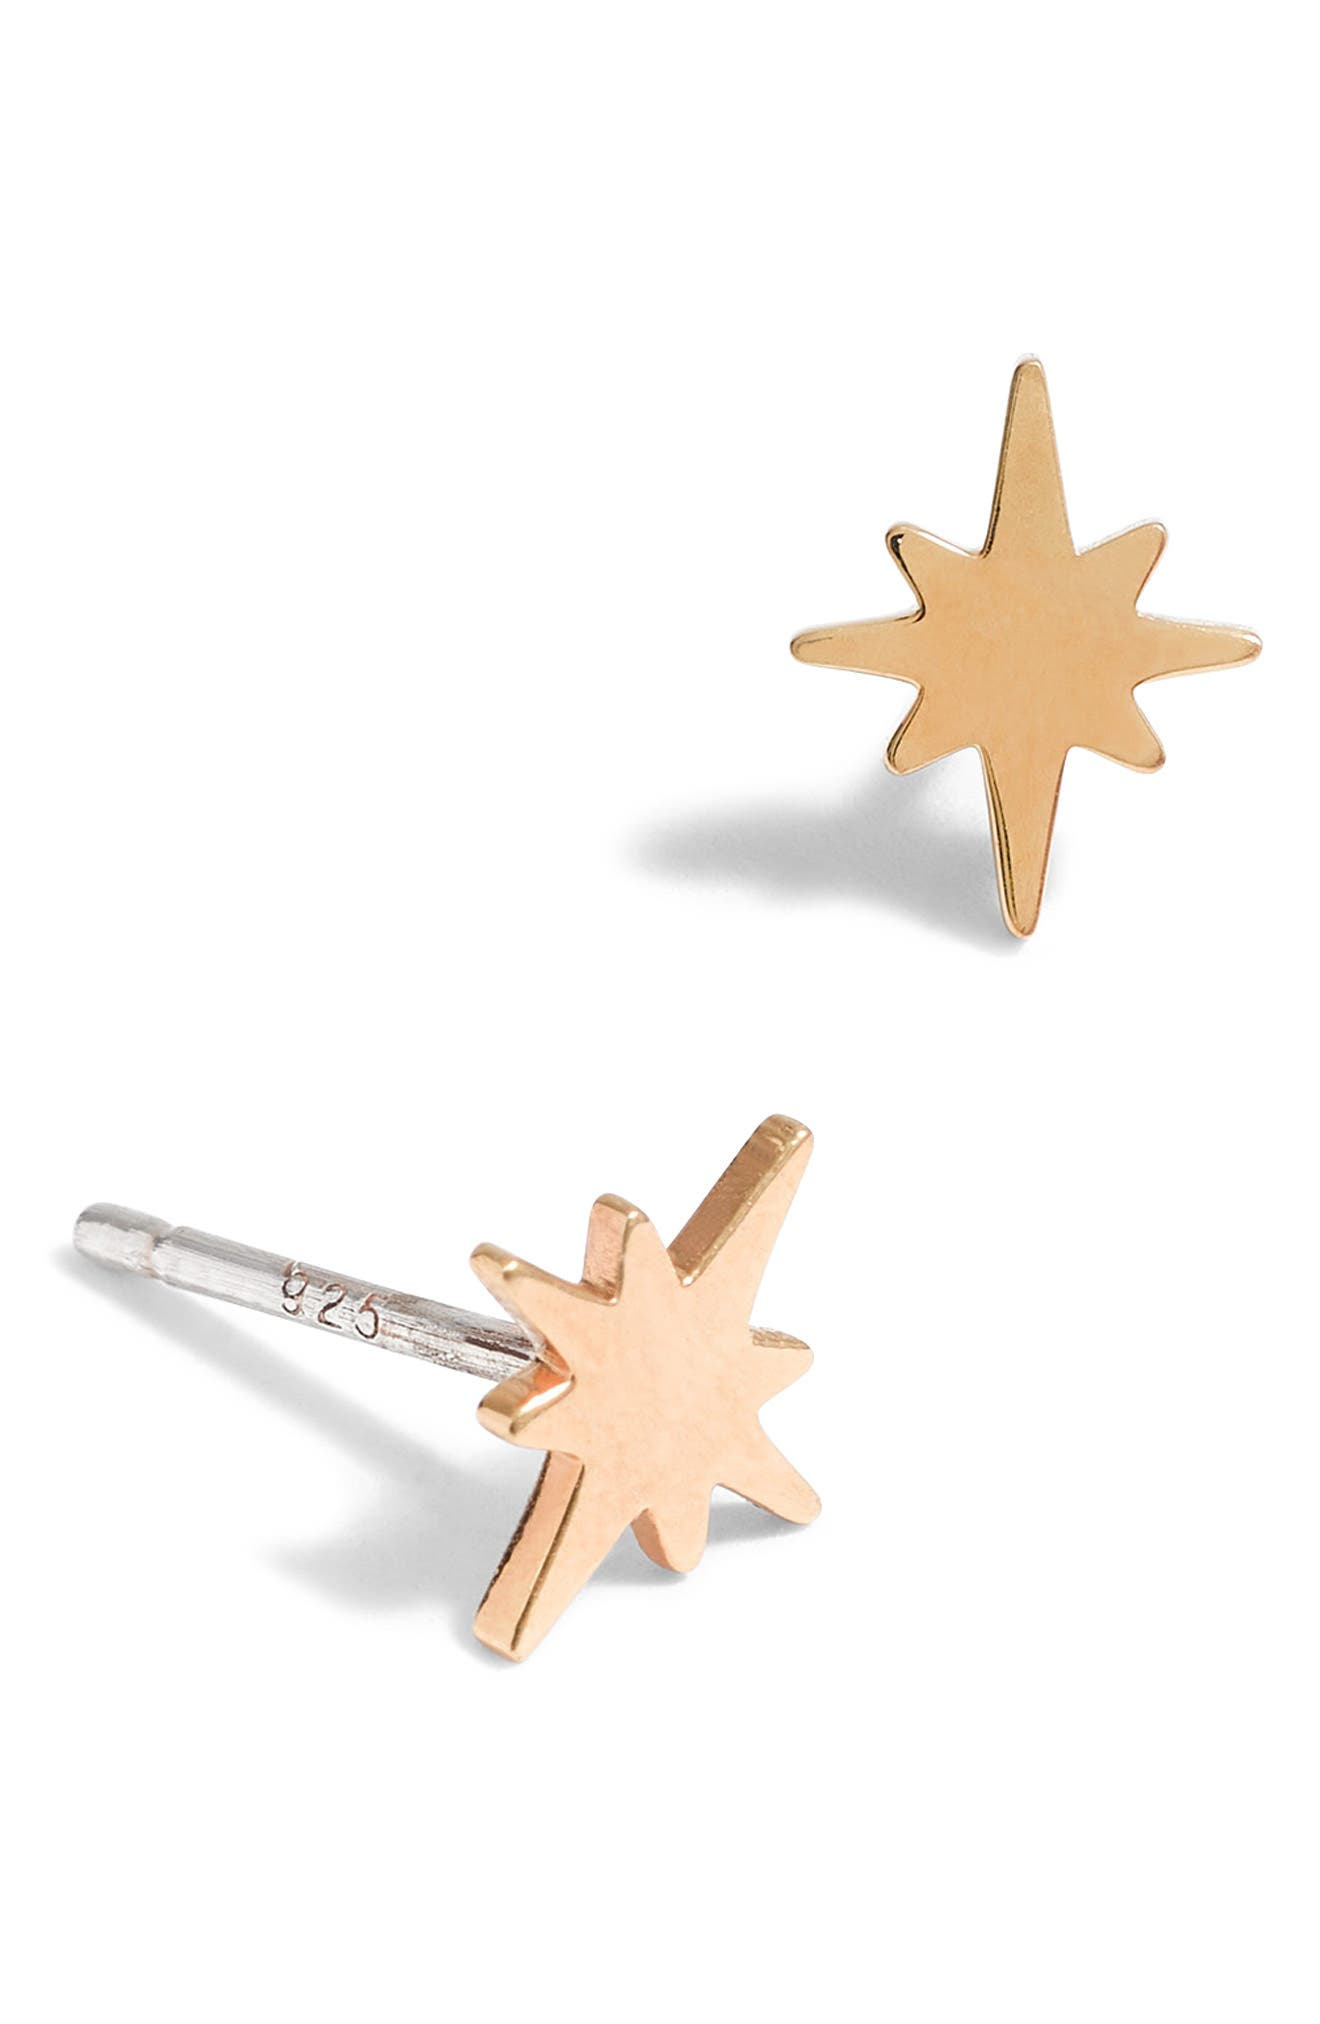 Bright Star Vermeil Stud Earrings,                             Main thumbnail 1, color,                             VERMEIL